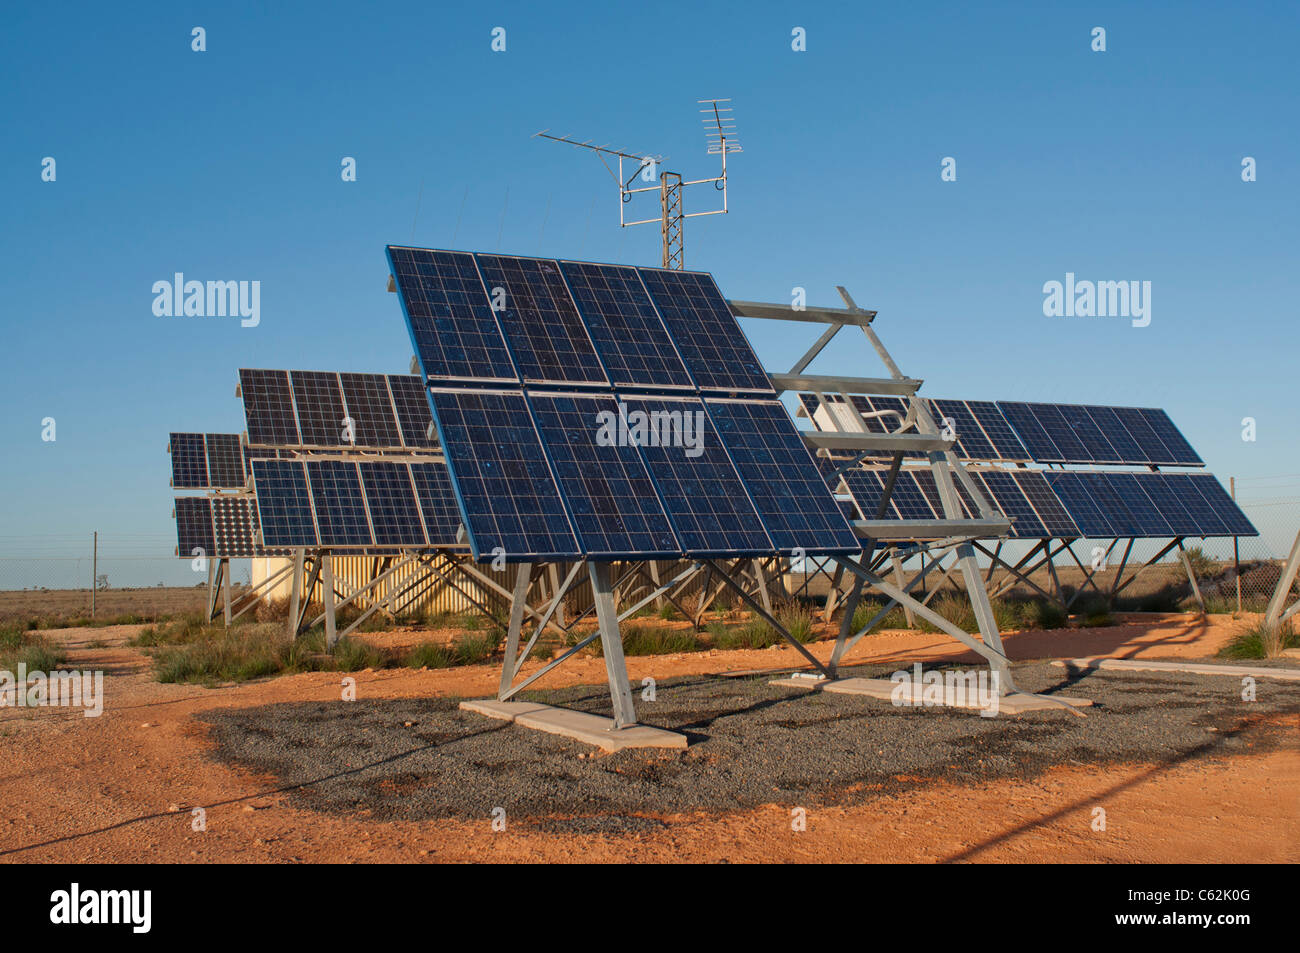 Solar panels used to provide power to telephone relay stations in the Australian outback - Stock Image